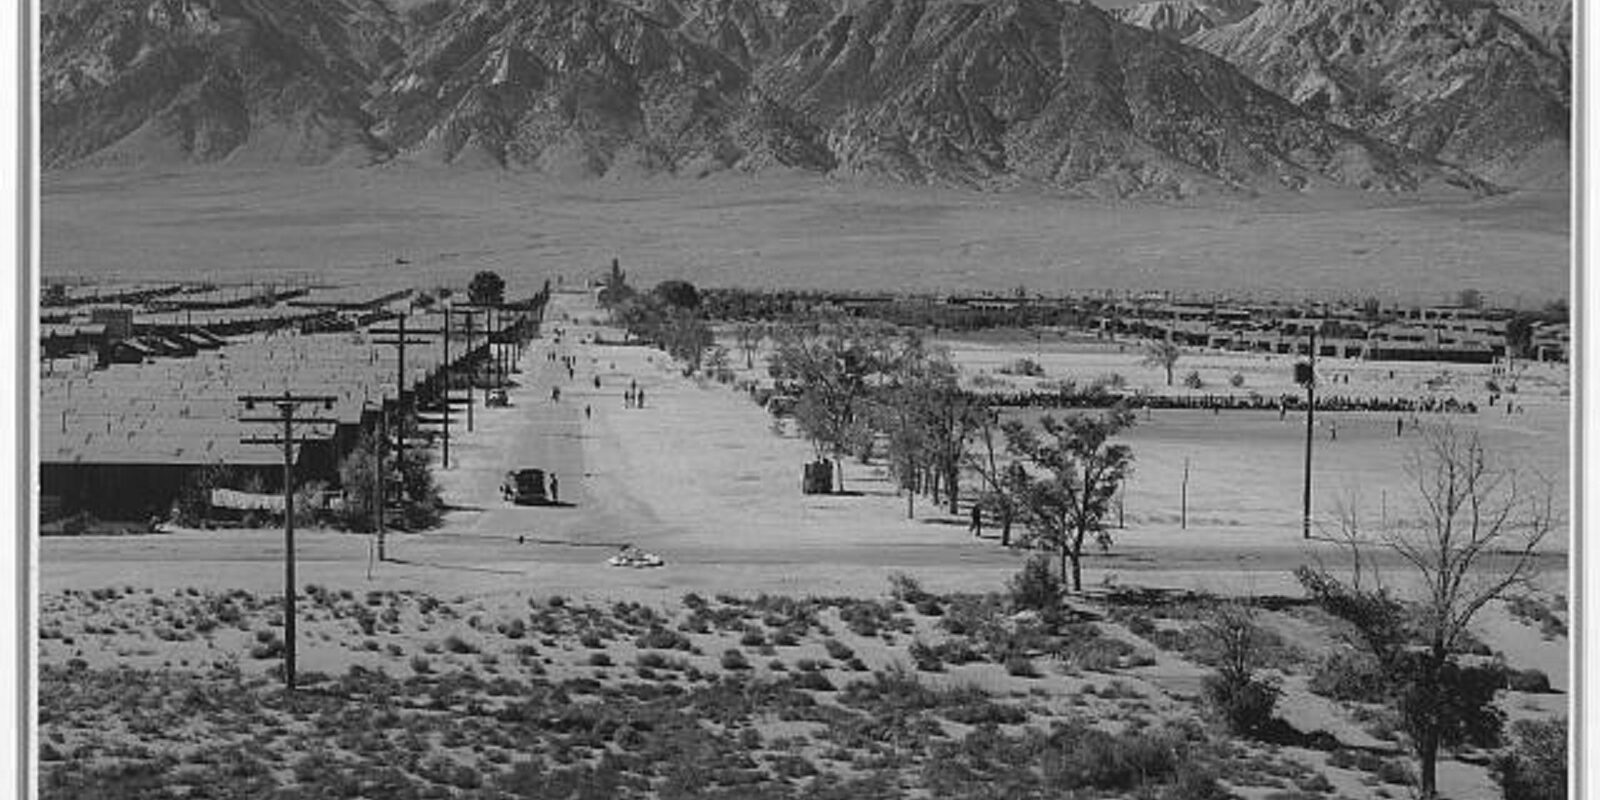 Manzanar Relocation Center from tower (1943)